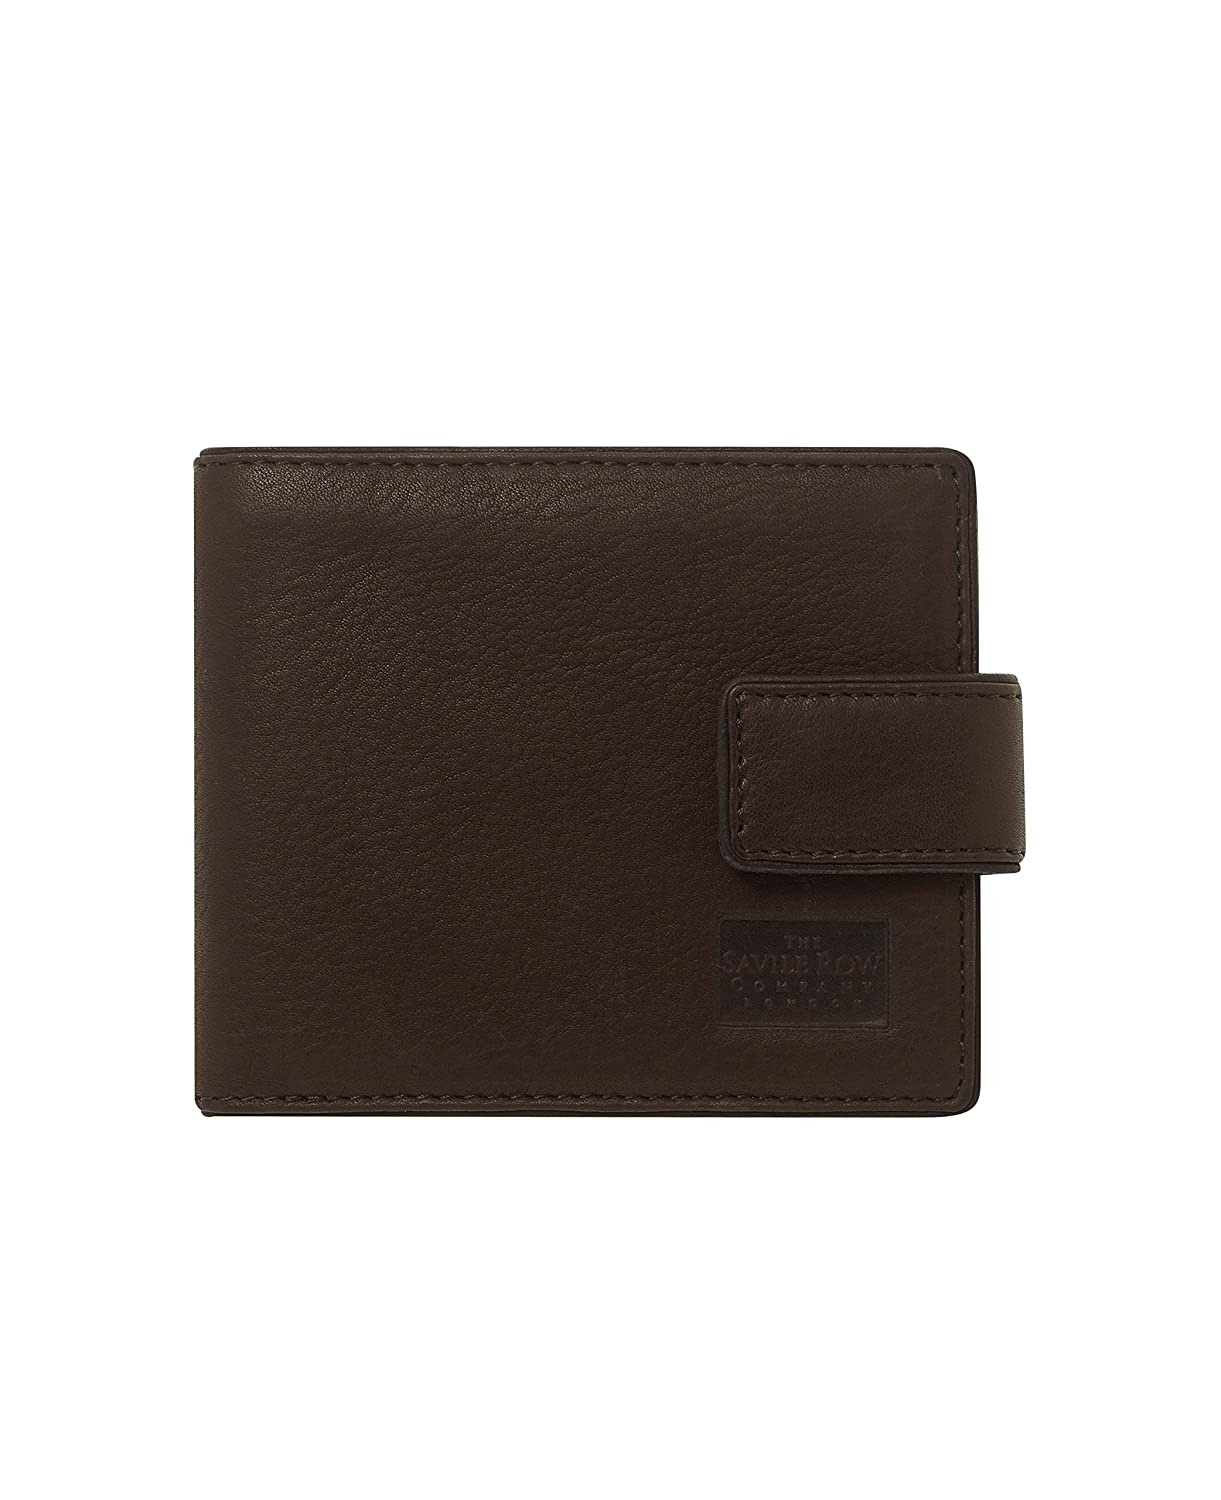 Savile Row Men's Chocolate Leather Classic Tab Coin Wallet The Savile Row Company London MLG907CHC000